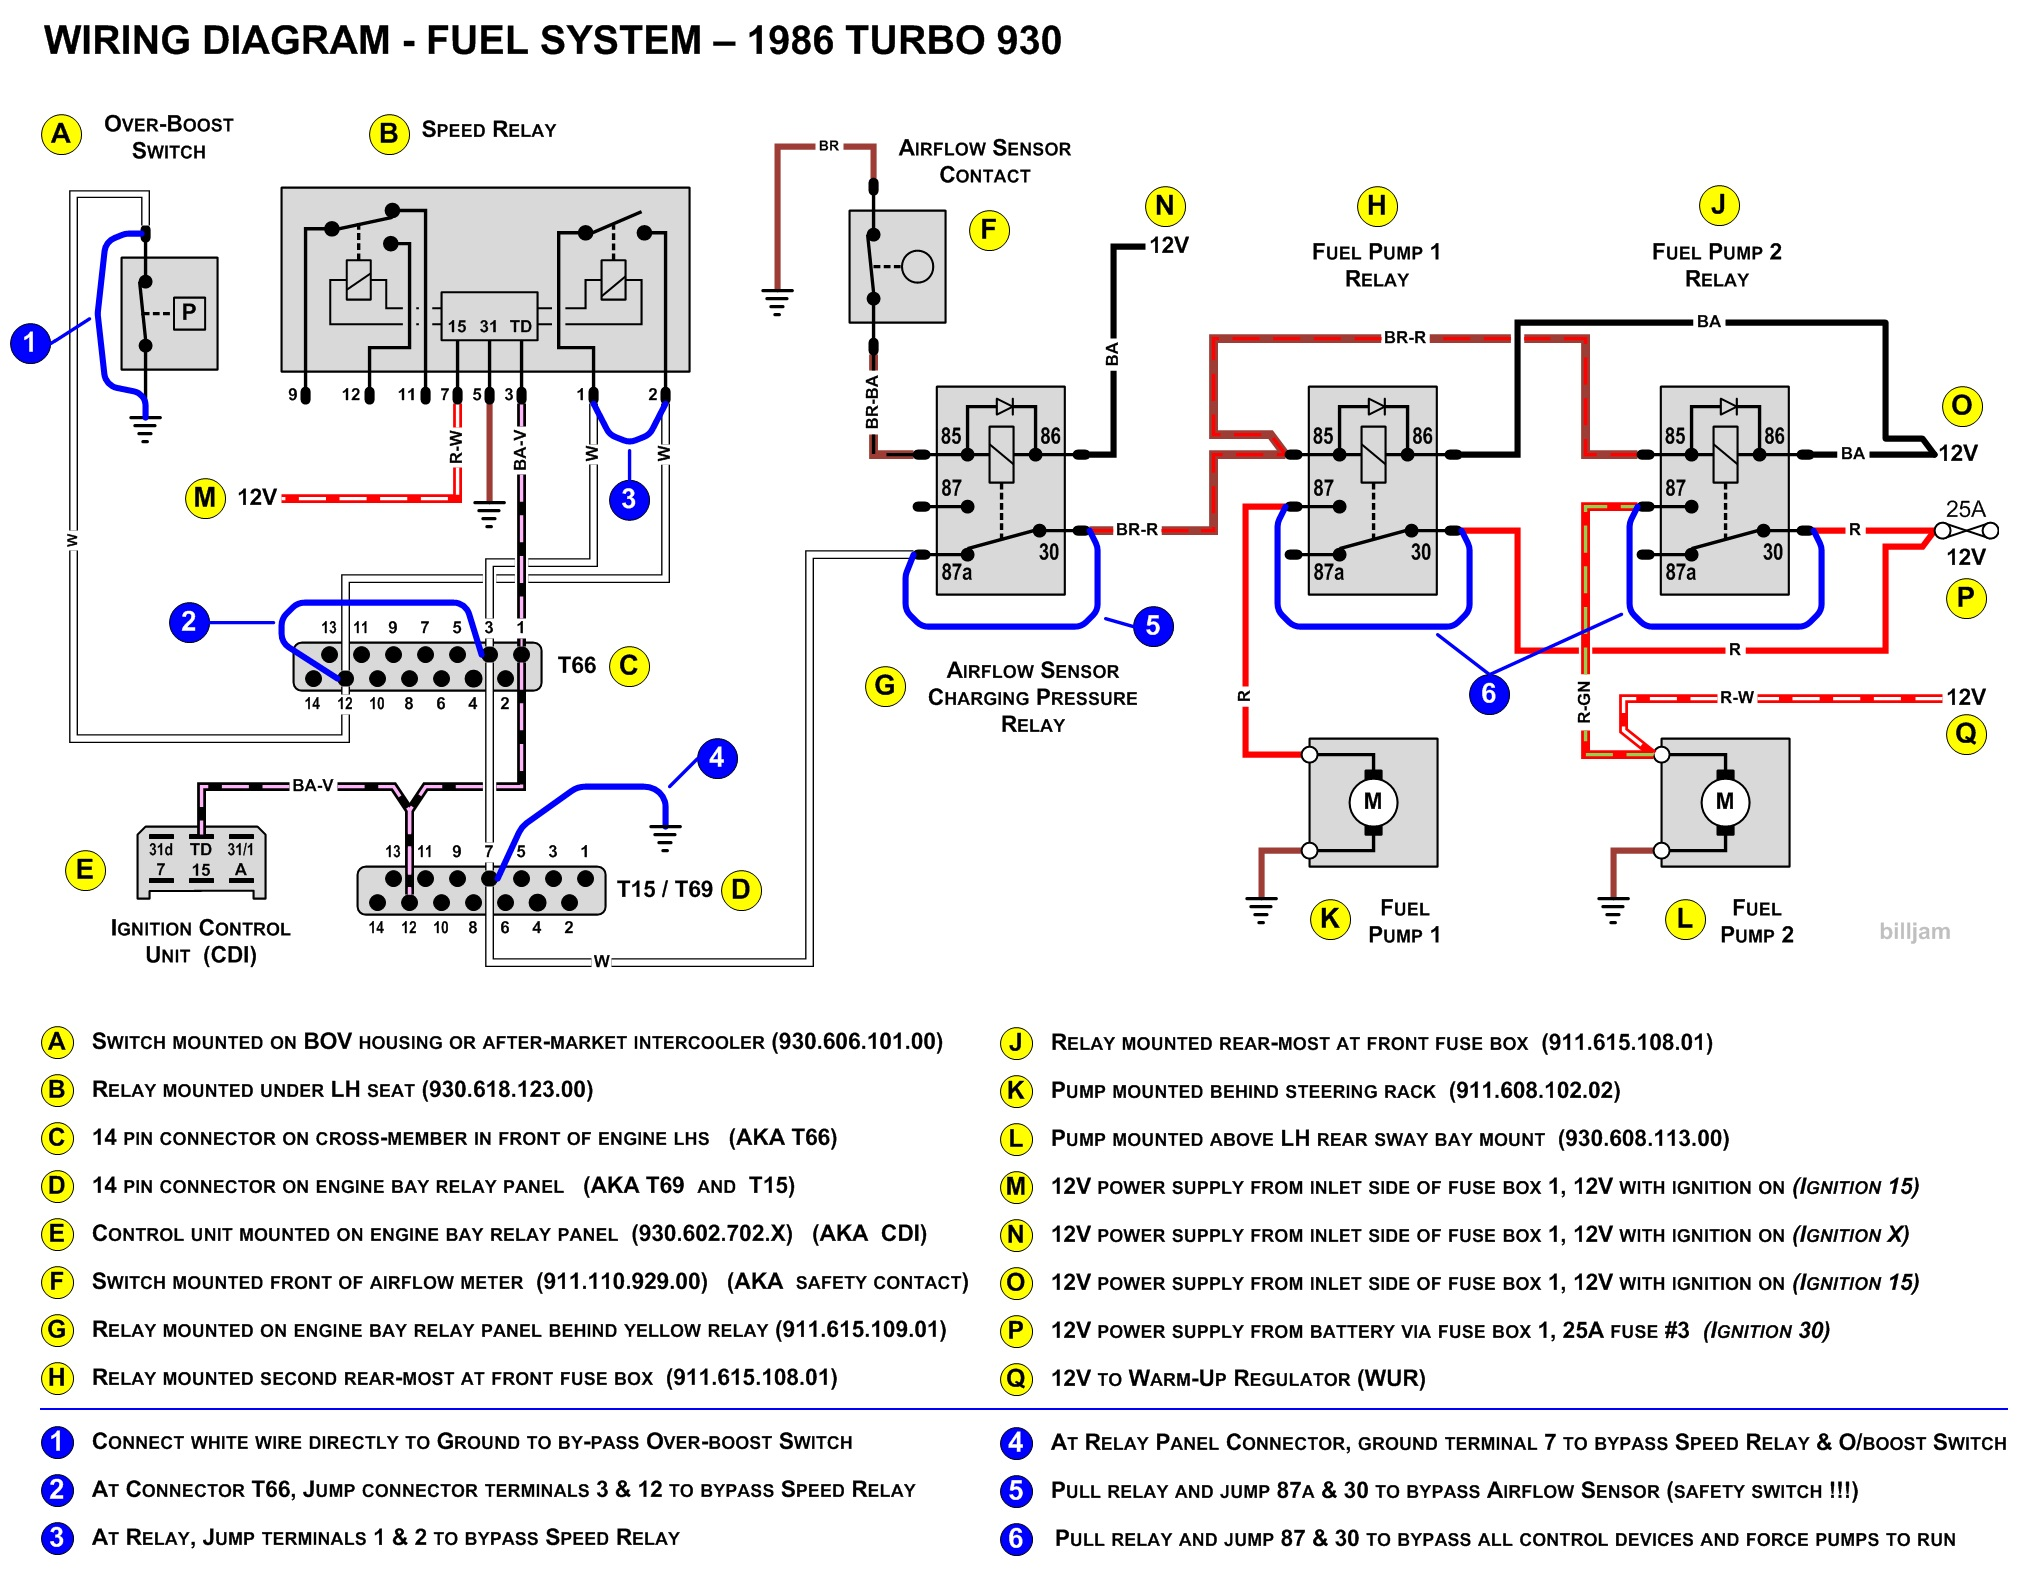 86 porsche 930 fuel system wiring diagram jumpers made a fuse box label for my 88 page 3 pelican parts technical bbs fuse box label at soozxer.org